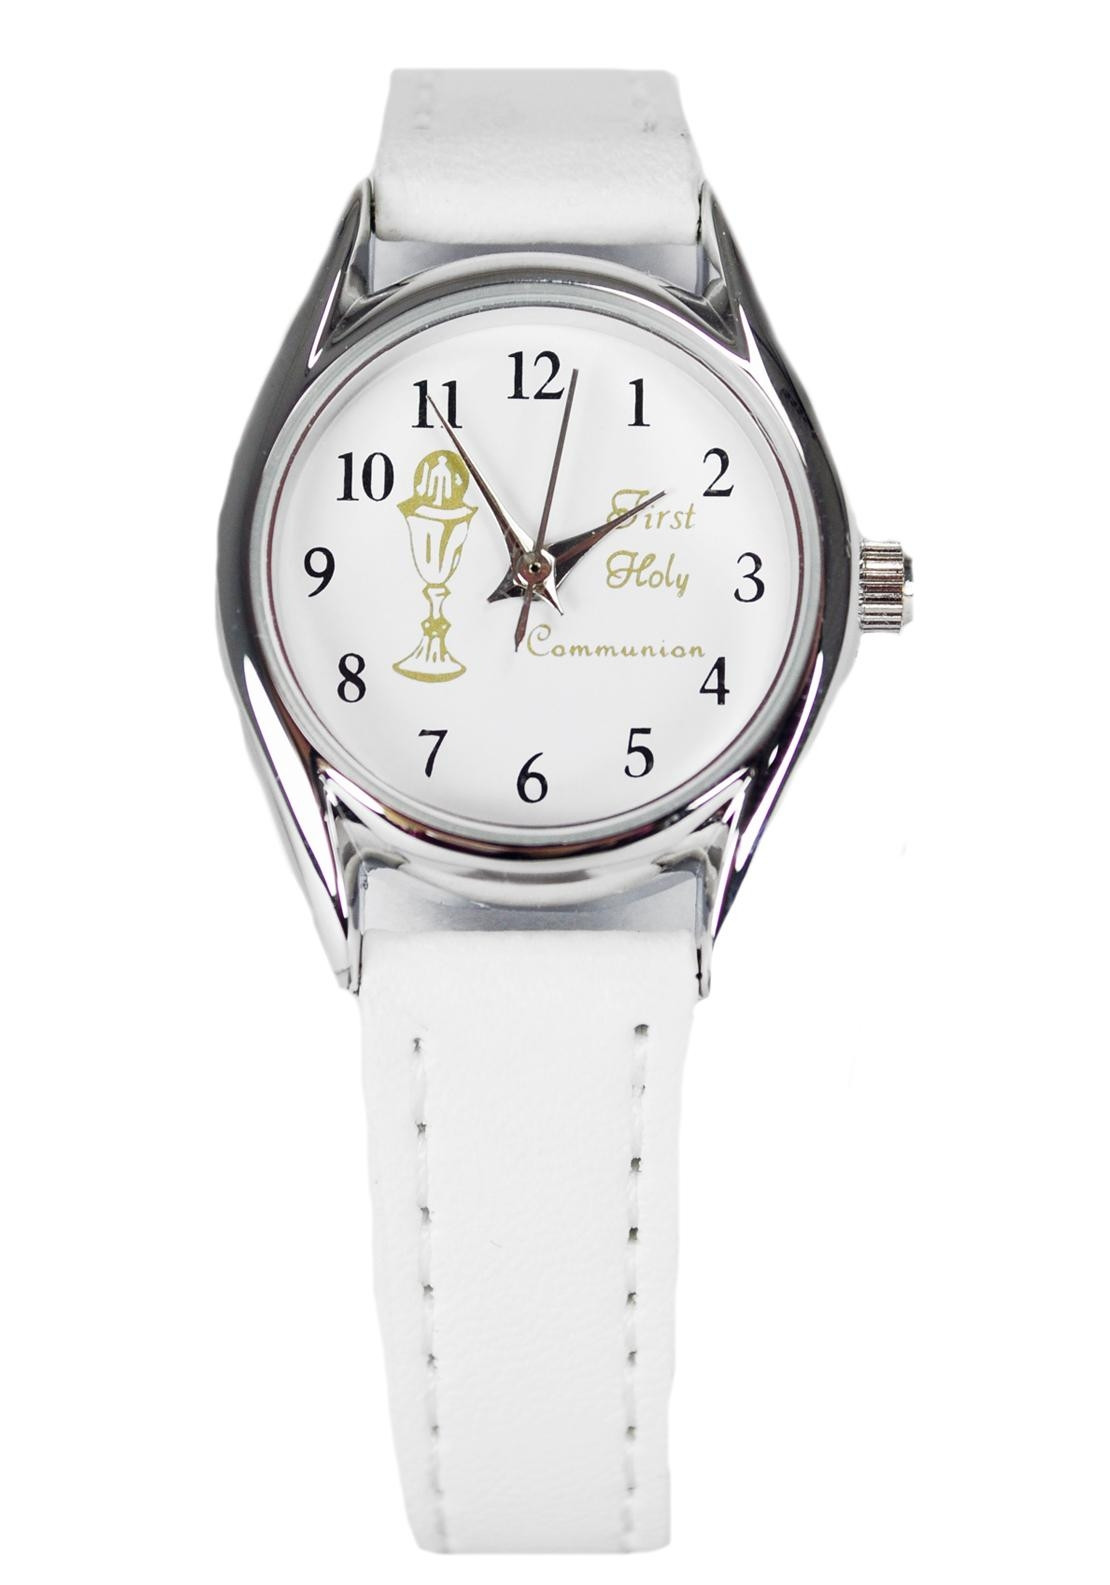 D'alton My First Holy Communion Watch, White & Silver